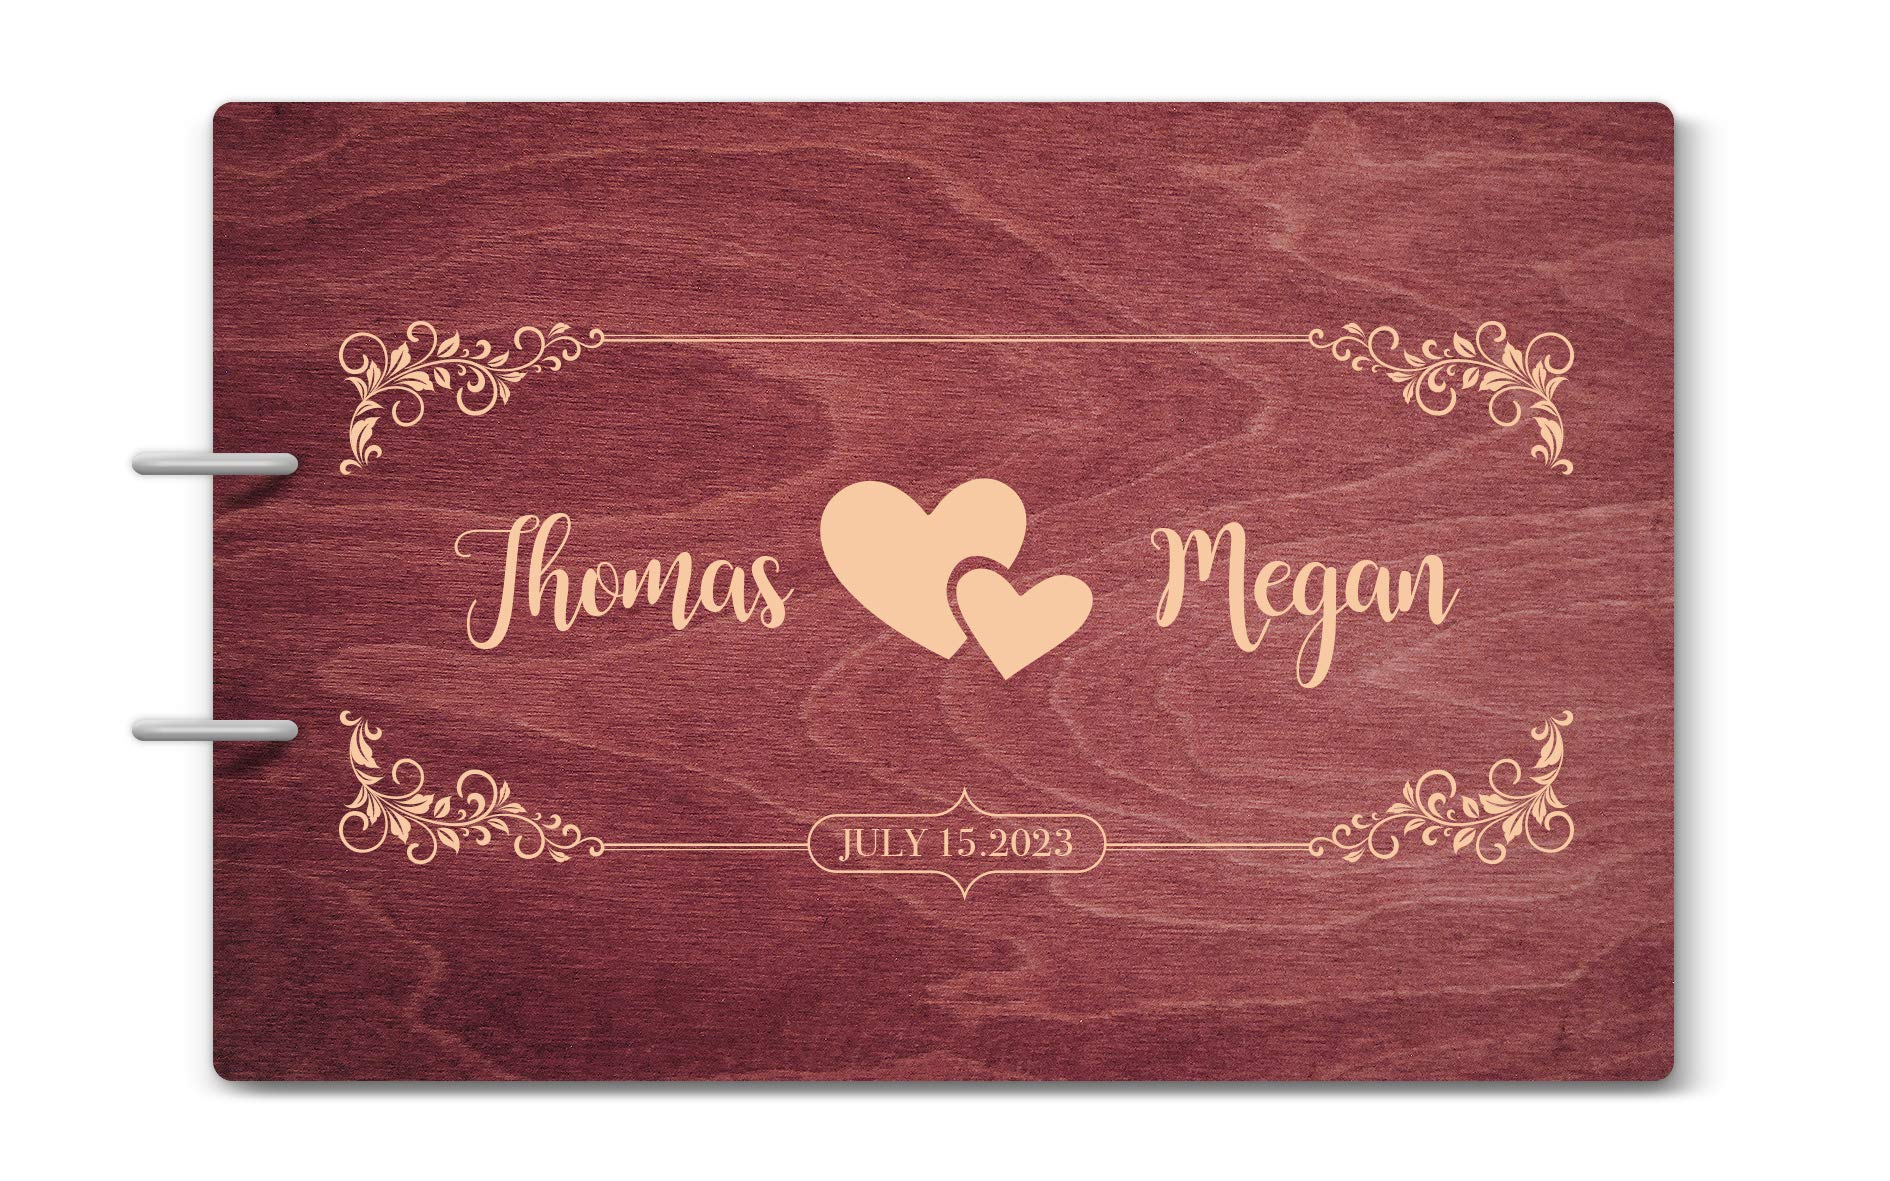 Custom Engraved Wooden Rustic Wedding Guest Book - Personalized Monogrammed - 02 Rose